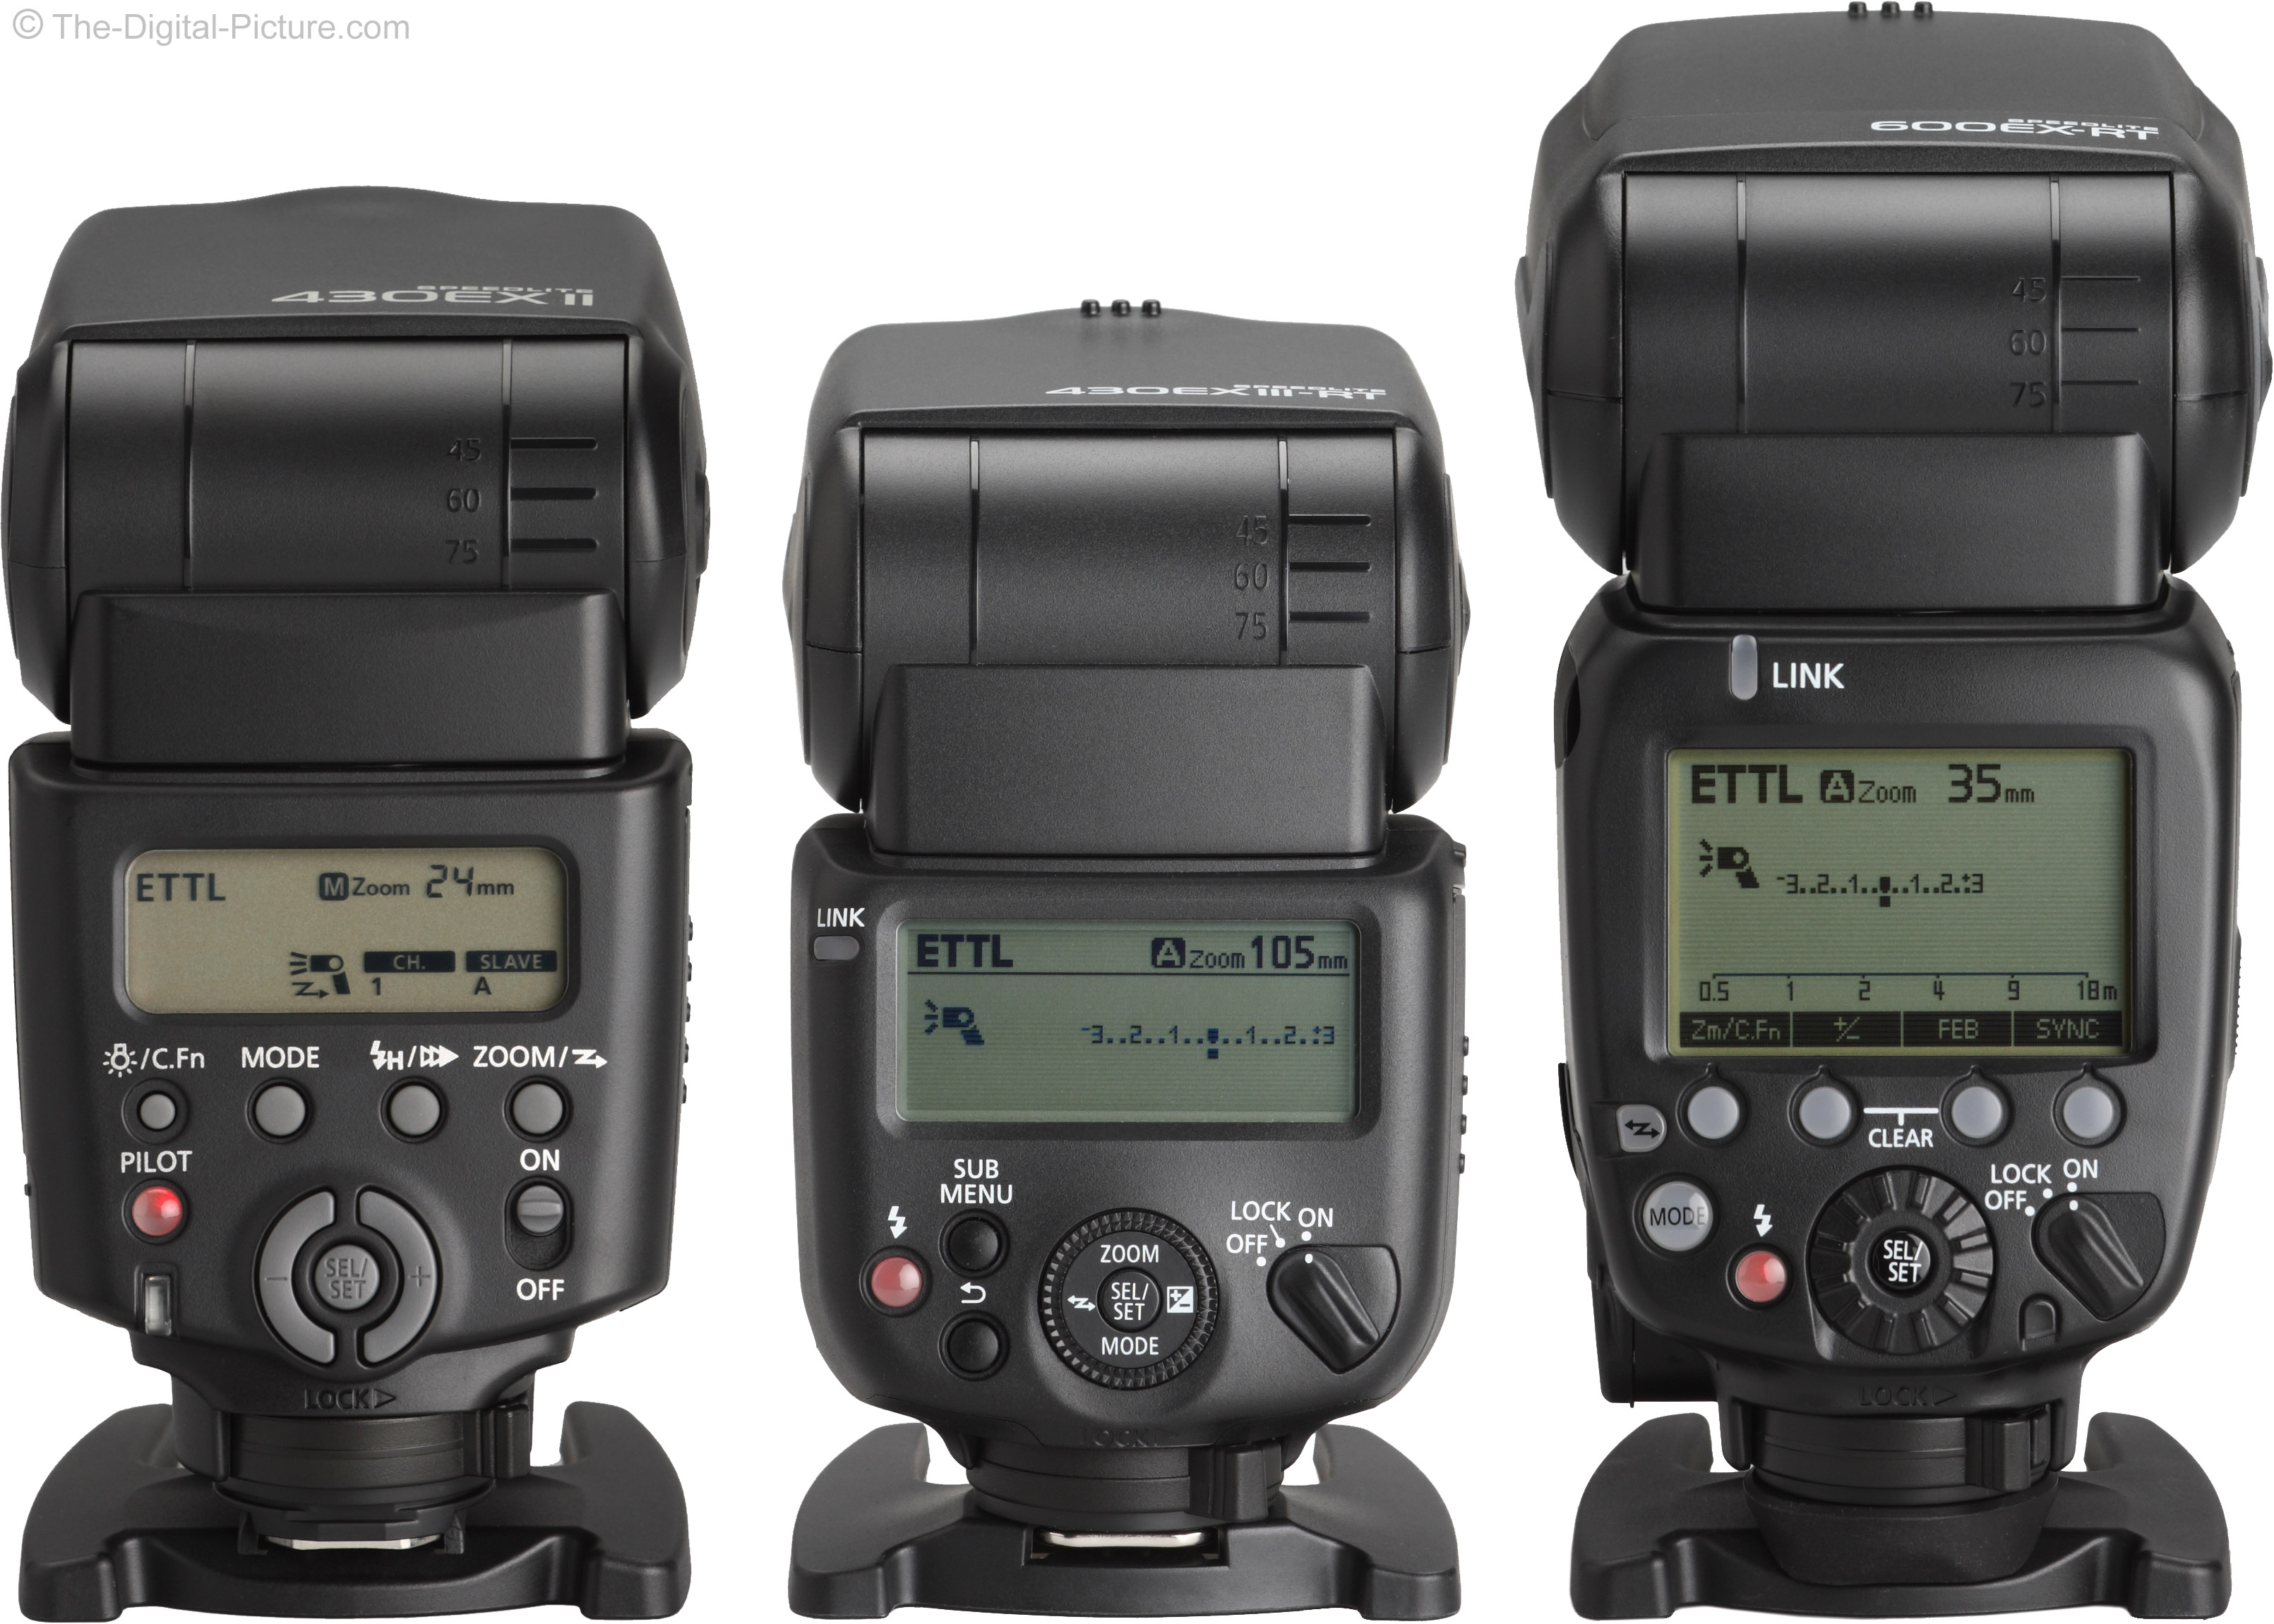 Canon Speedlite 430EX II, 430EX III-RT and 600EX RT Flash Comparison